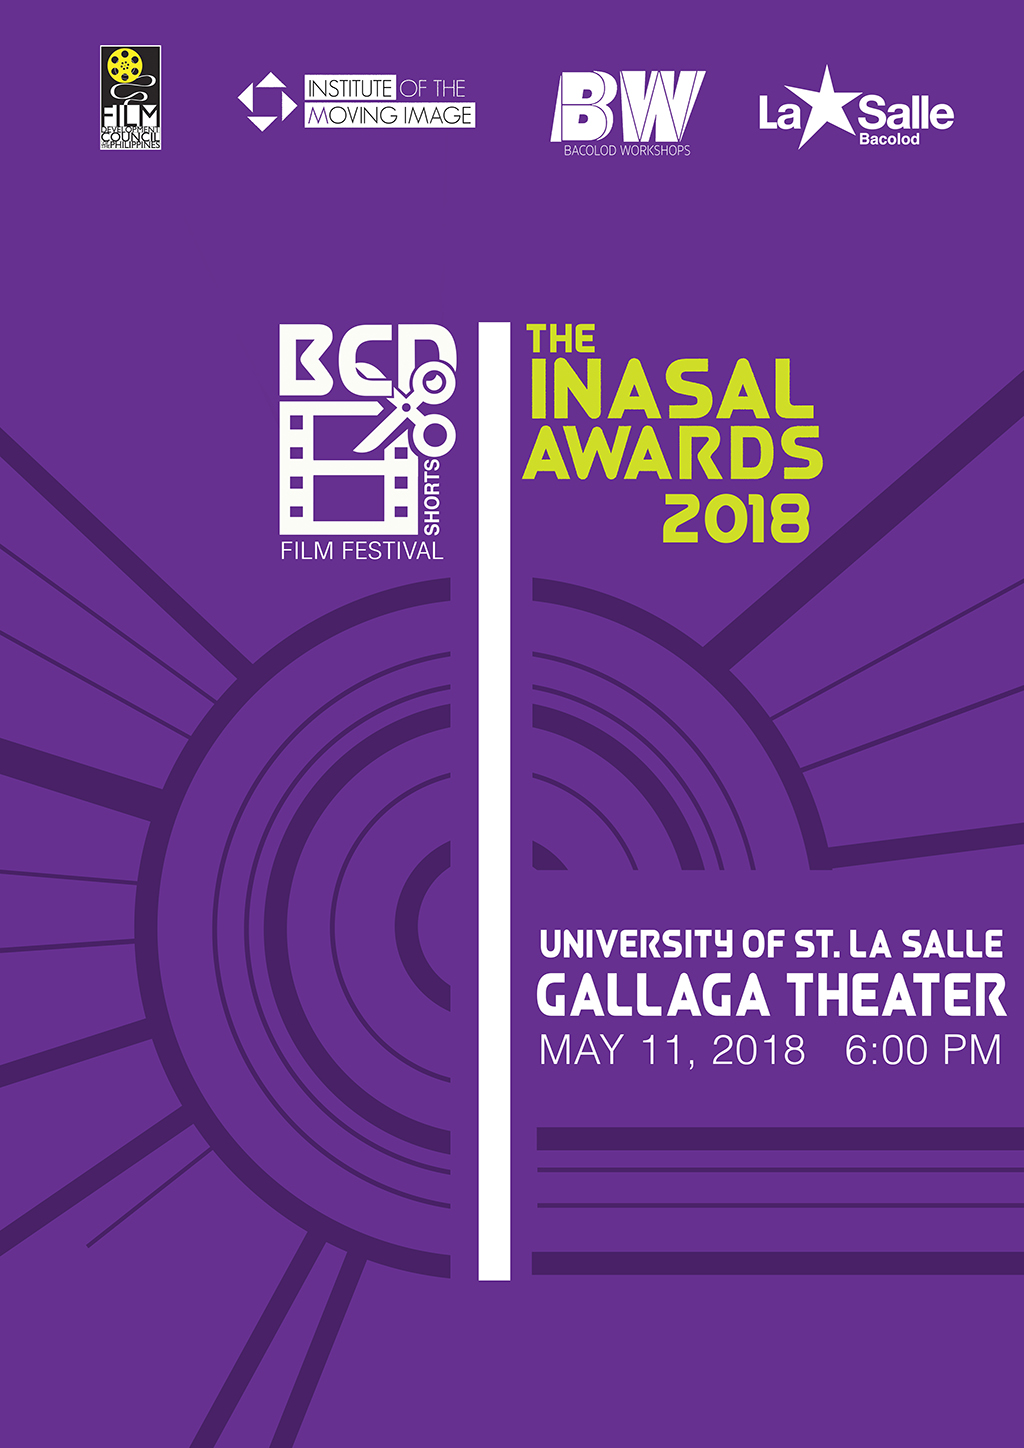 Bacolod-Shorts-Film-Festival-The-Inasal-Awards-2018.jpg